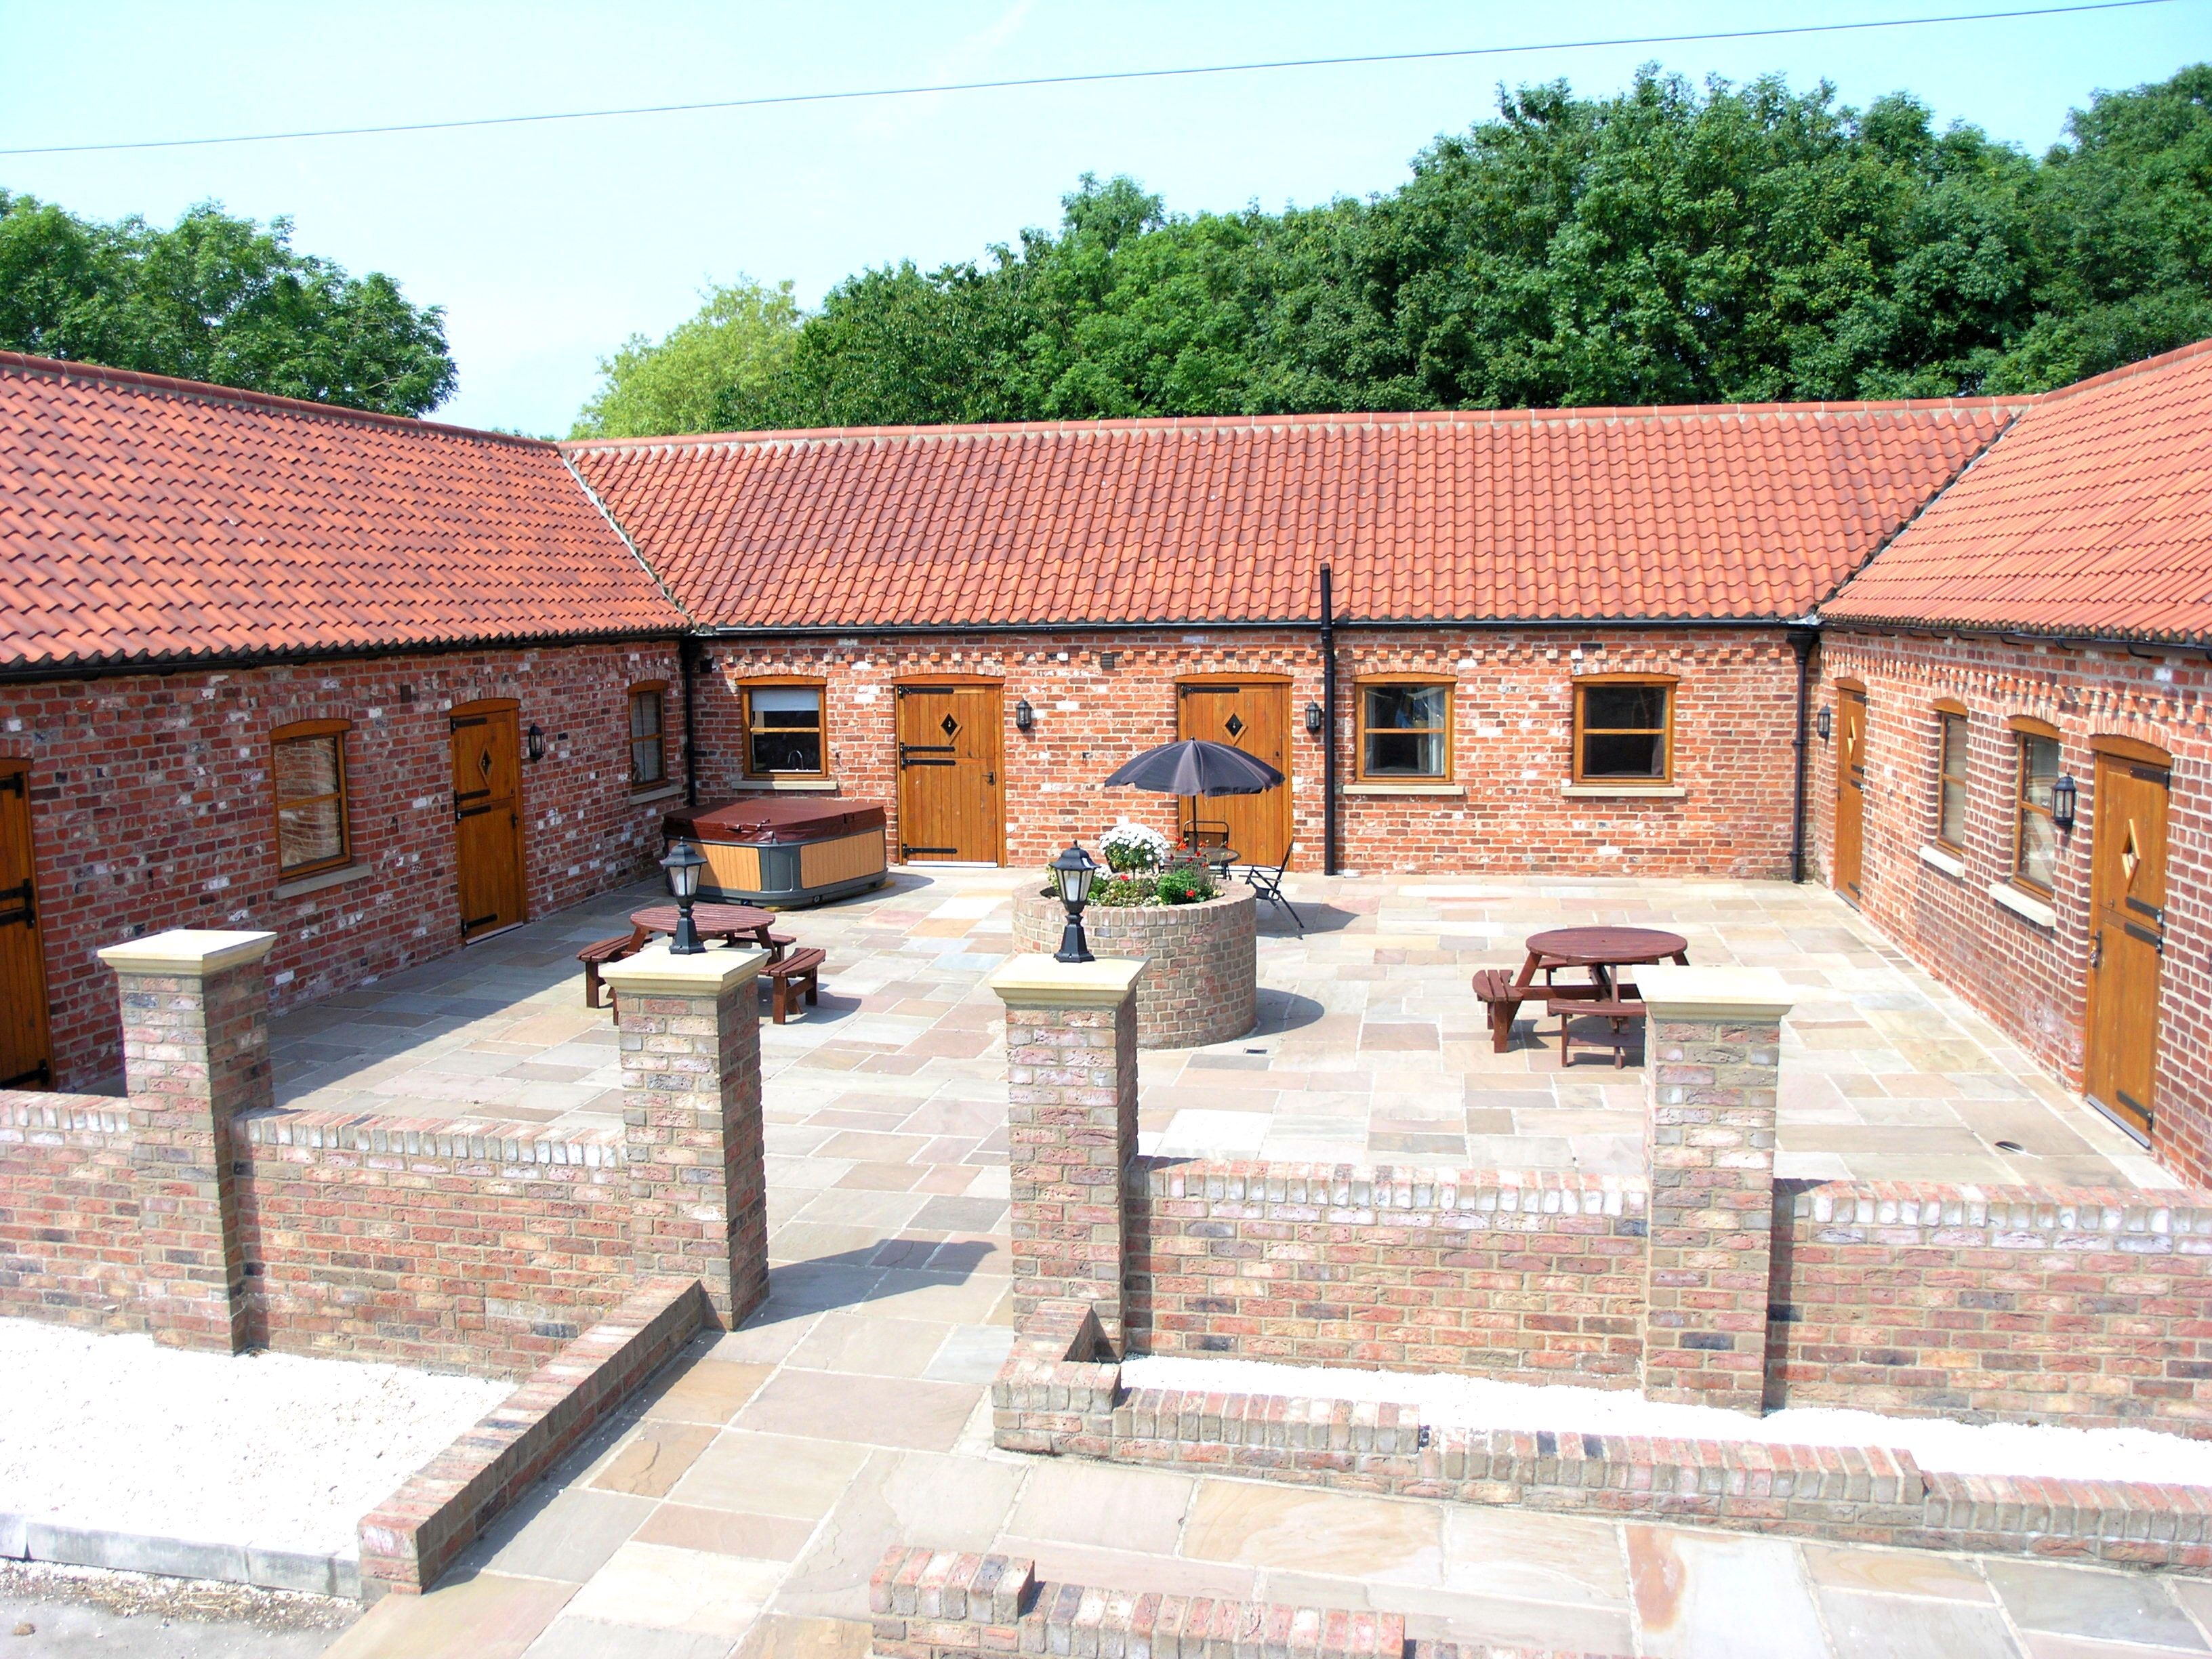 Westfield Courtyard Cottages Luxury Group Self Catering Accommodation In Yorkshire Sleeps Up To 10 With Outdoor Hot Cottage Indoor Hot Tub Courtyard